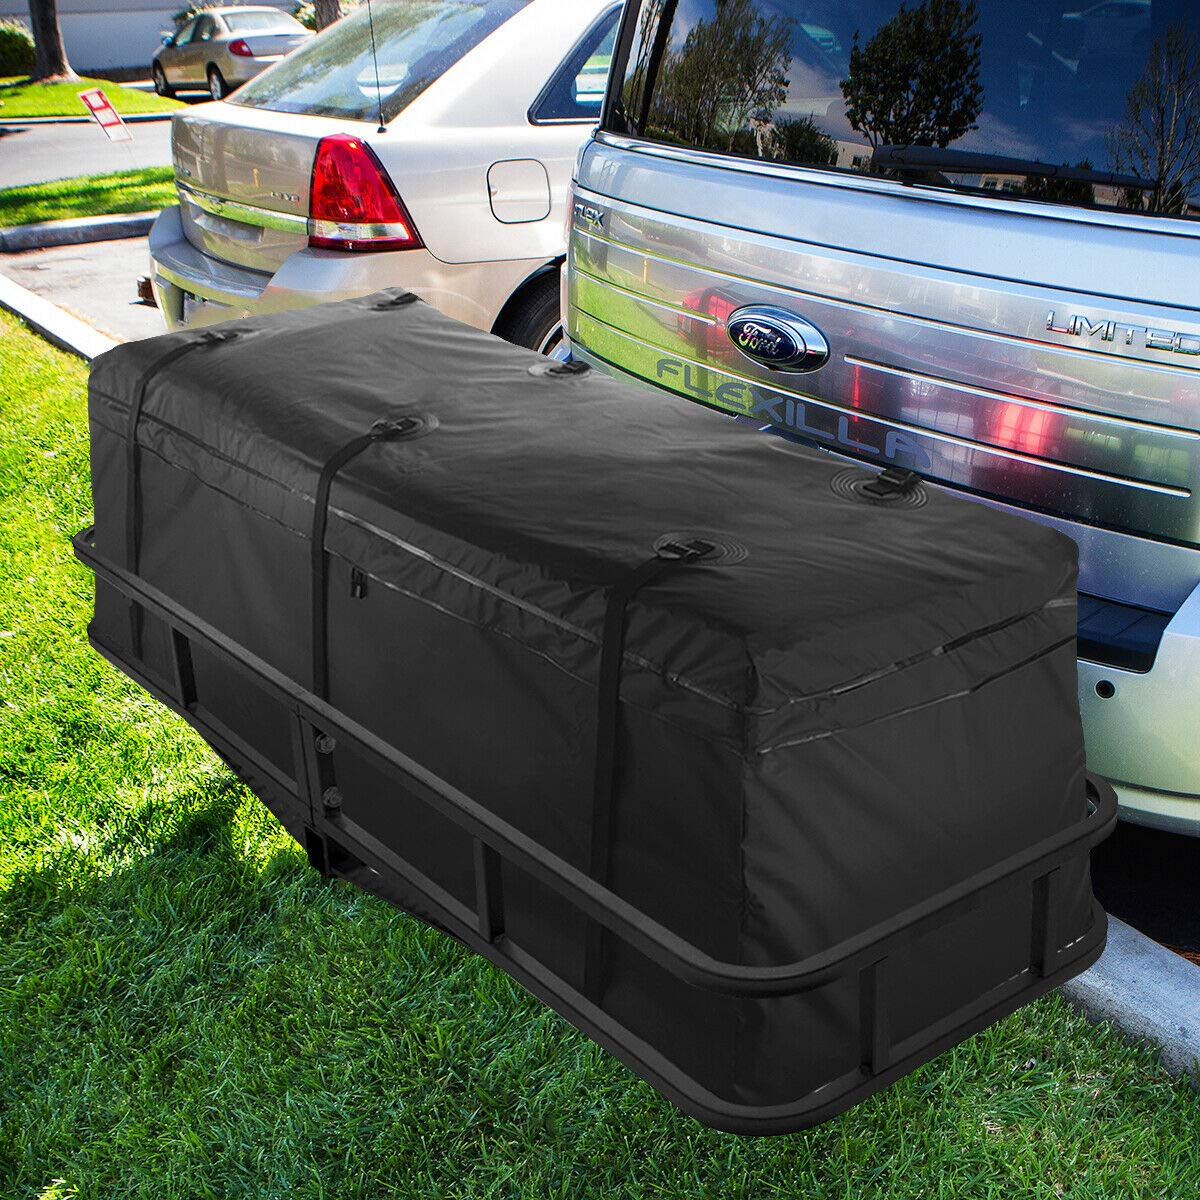 9TRADING 60'' Cargo Hauler Carrier Hitch Mounted Receiver Luggage Basket with Bag Set by 9TRADING